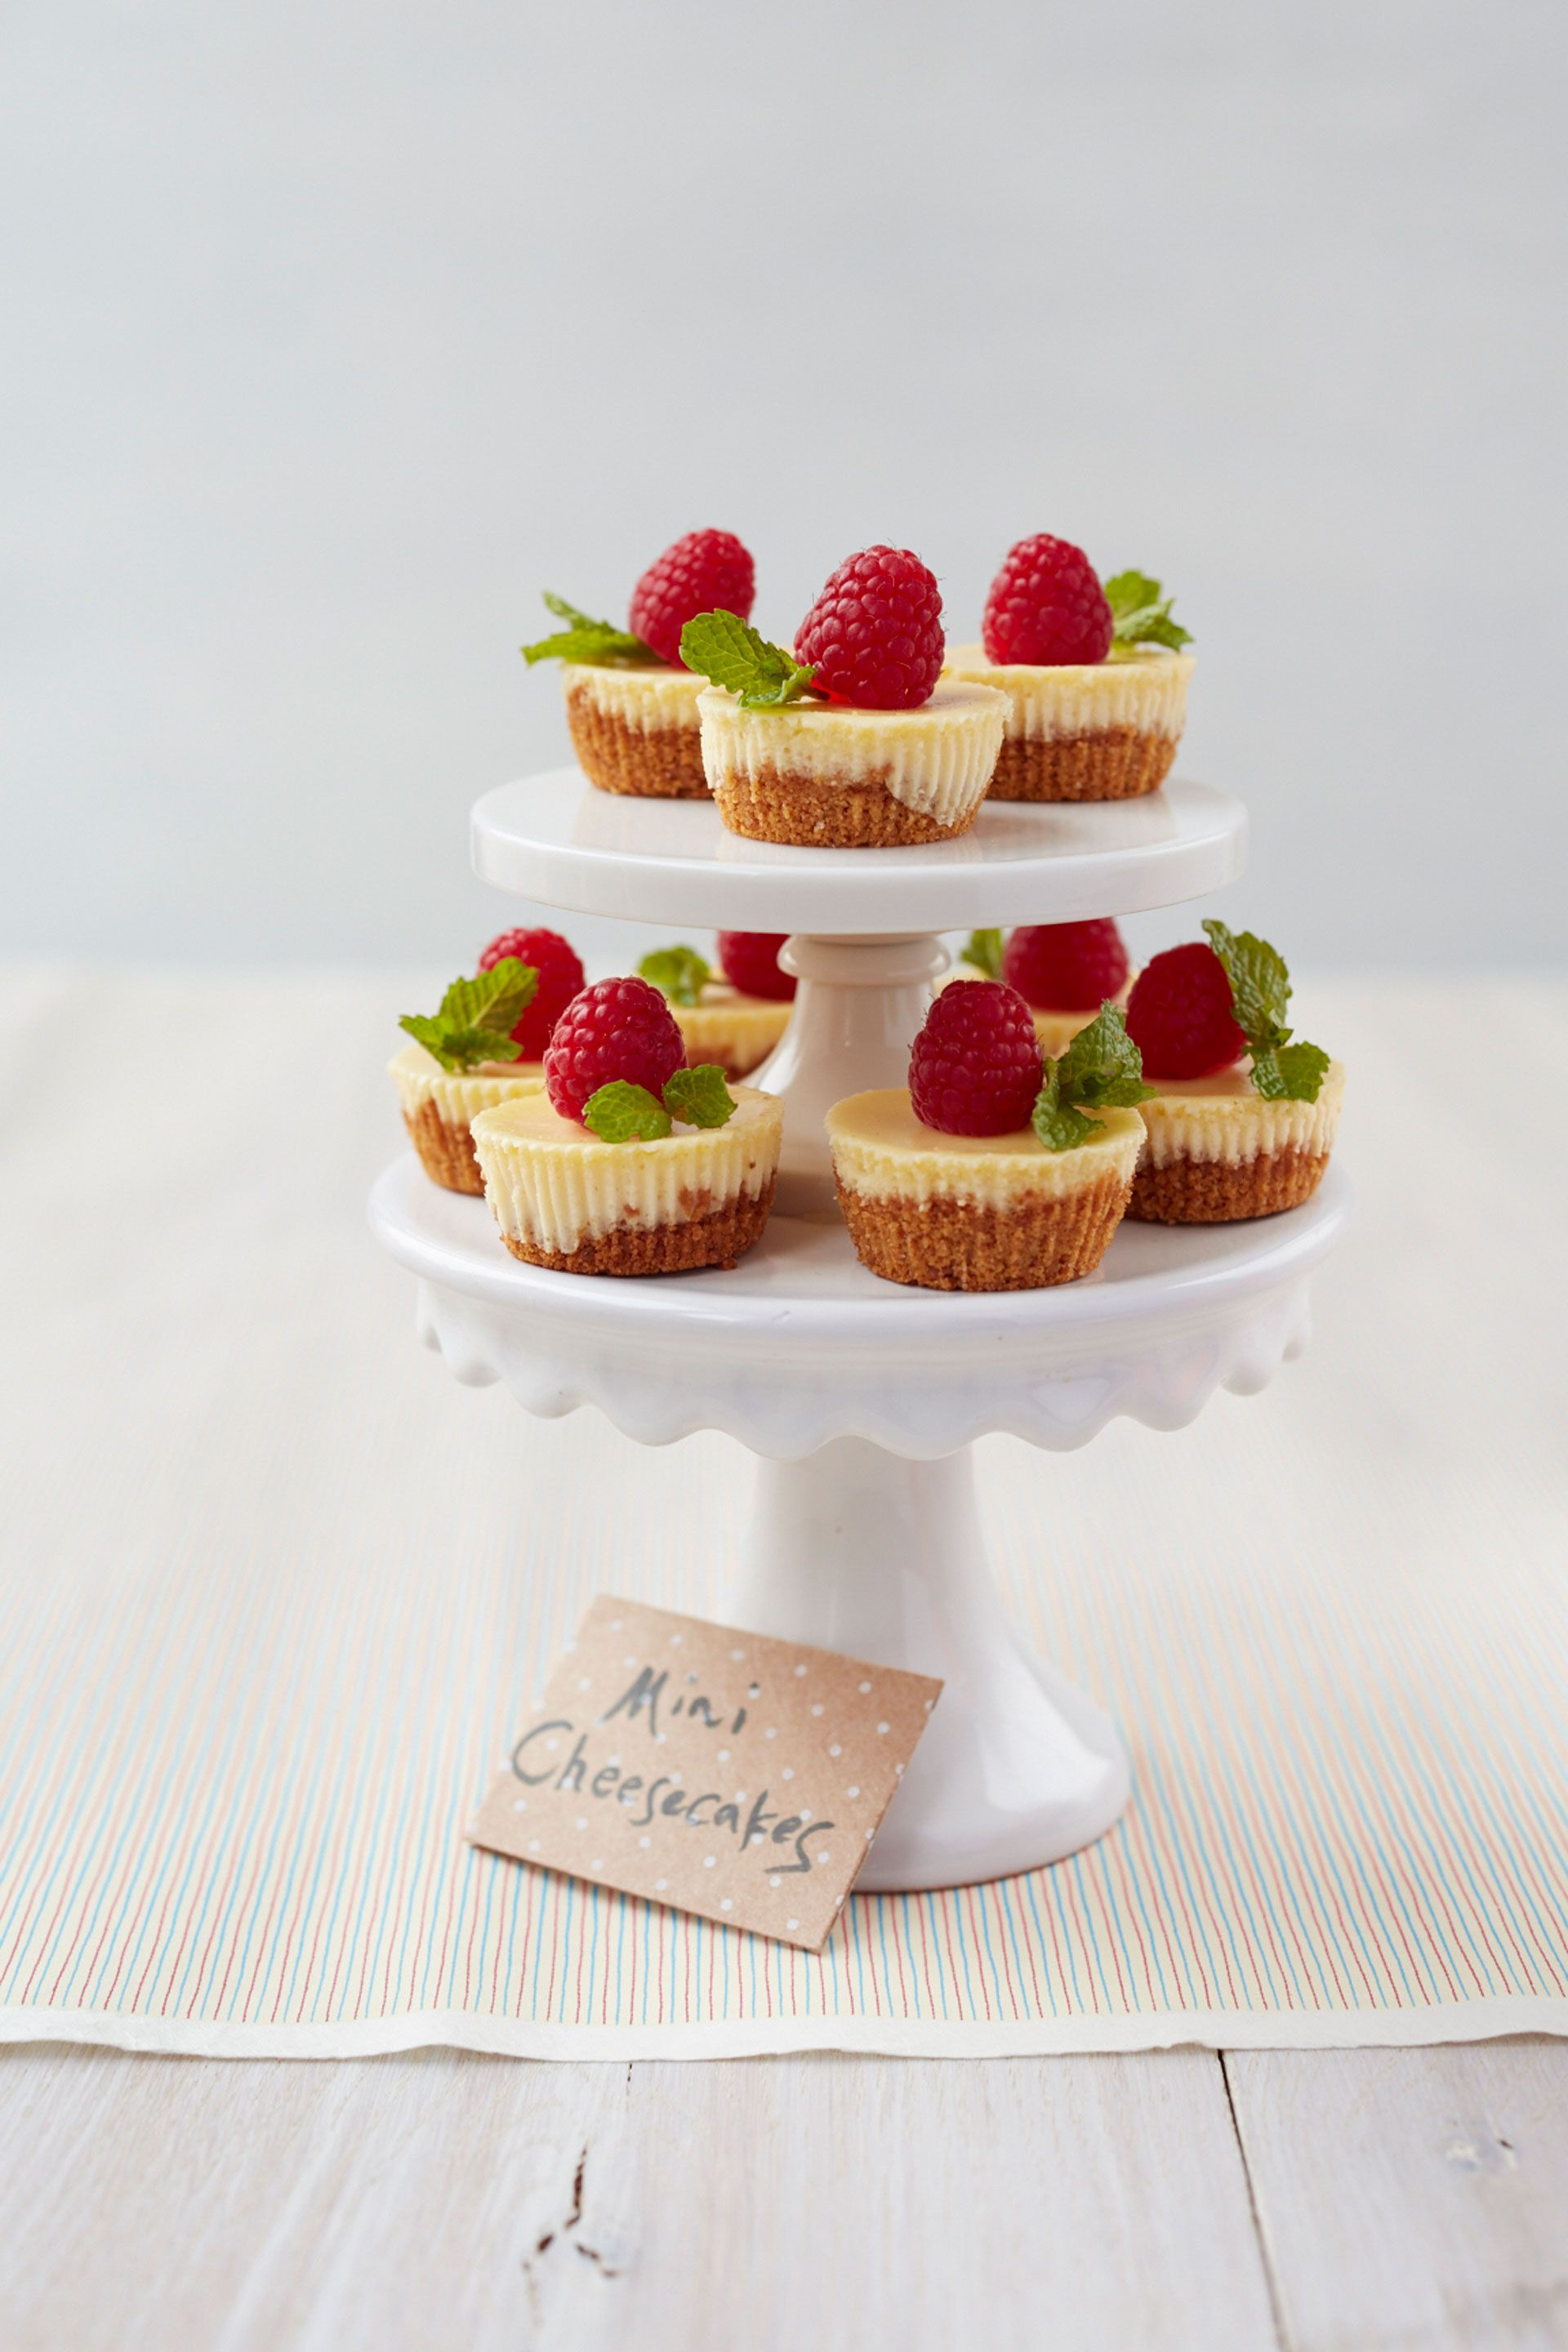 "<p>Feeling creative? These miniature cheesecakes are the perfect base for a variety of toppings; anything from fresh farmer's market berries to whipped cream and crumbled cookies will work.</p> <p><strong>Recipe: <a href=""http://www.delish.com/recipefinder/mix-match-mini-cheesecakes-recipe-ghk0514"" target=""_blank"">Mix and Match Mini Cheesecakes</a></strong></p>"